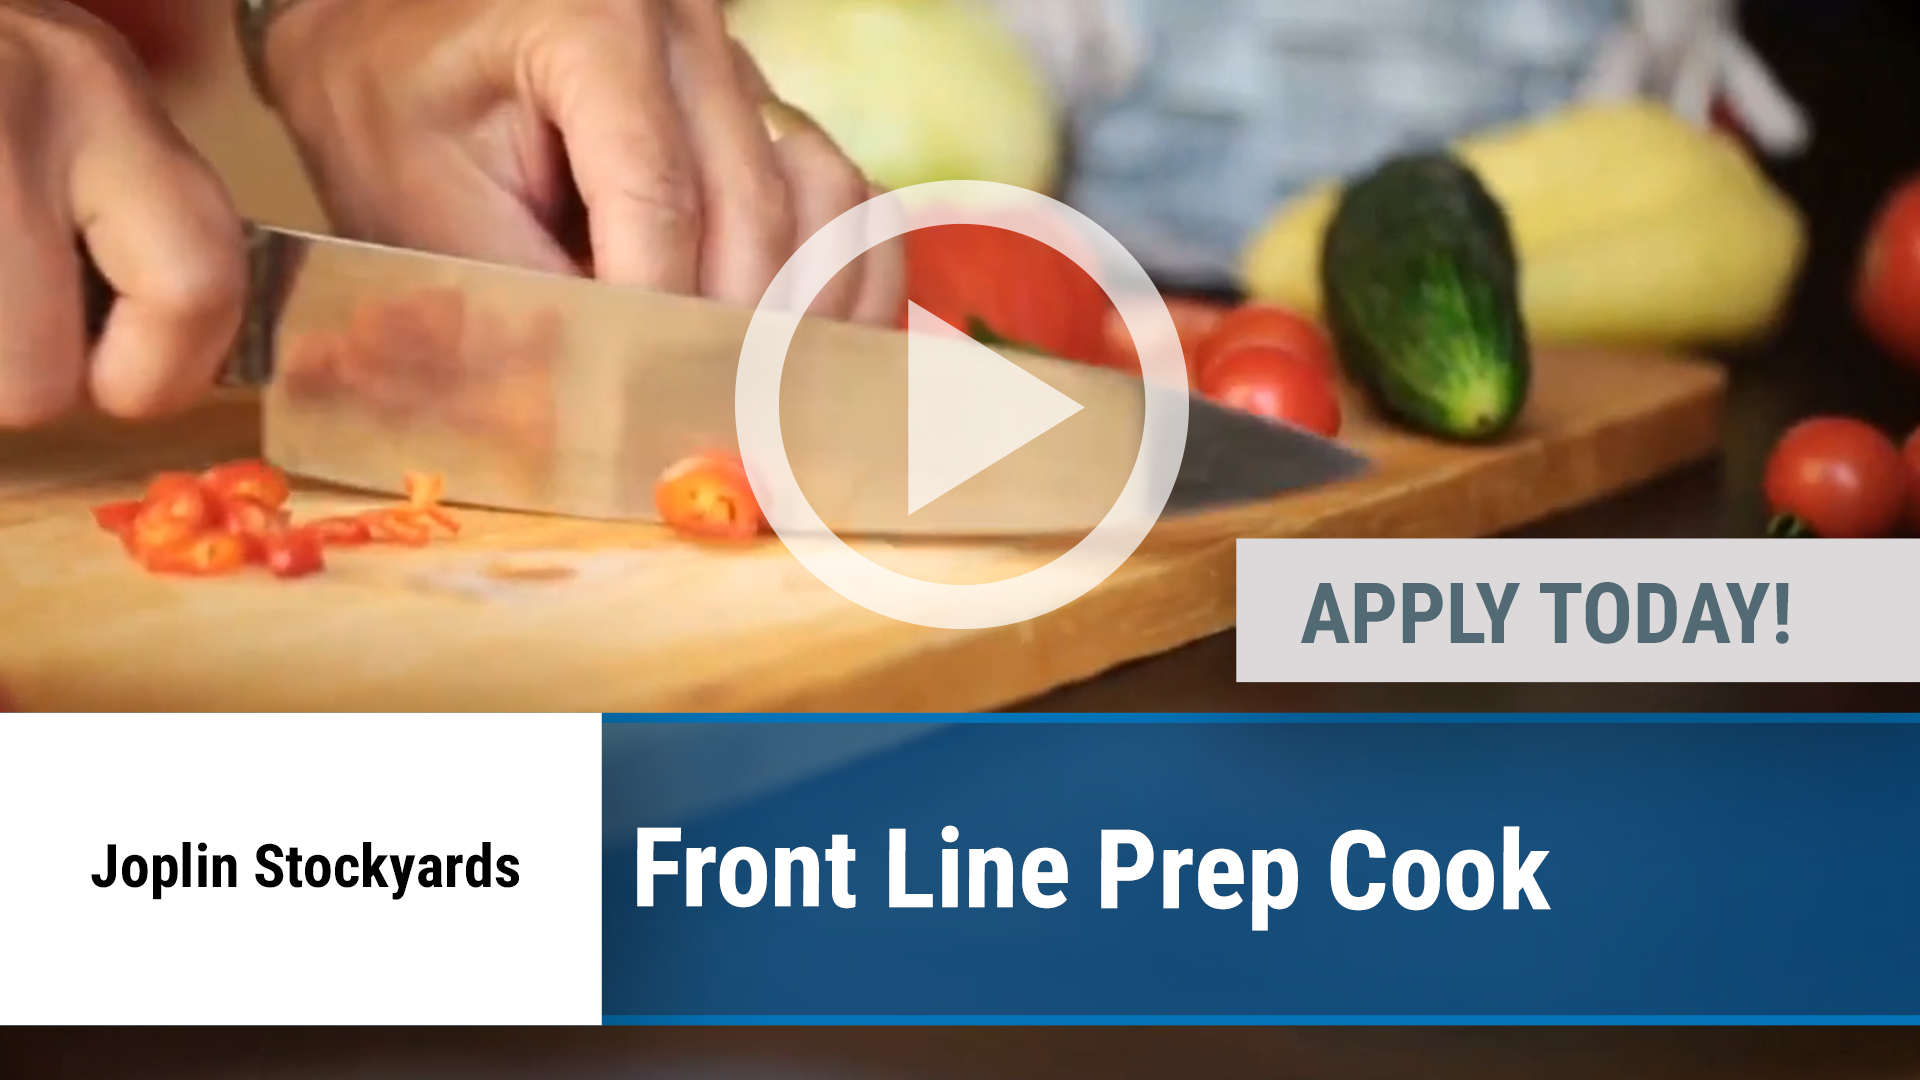 Watch our careers video for available job opening Front Line Prep Cook in Joplin, MO